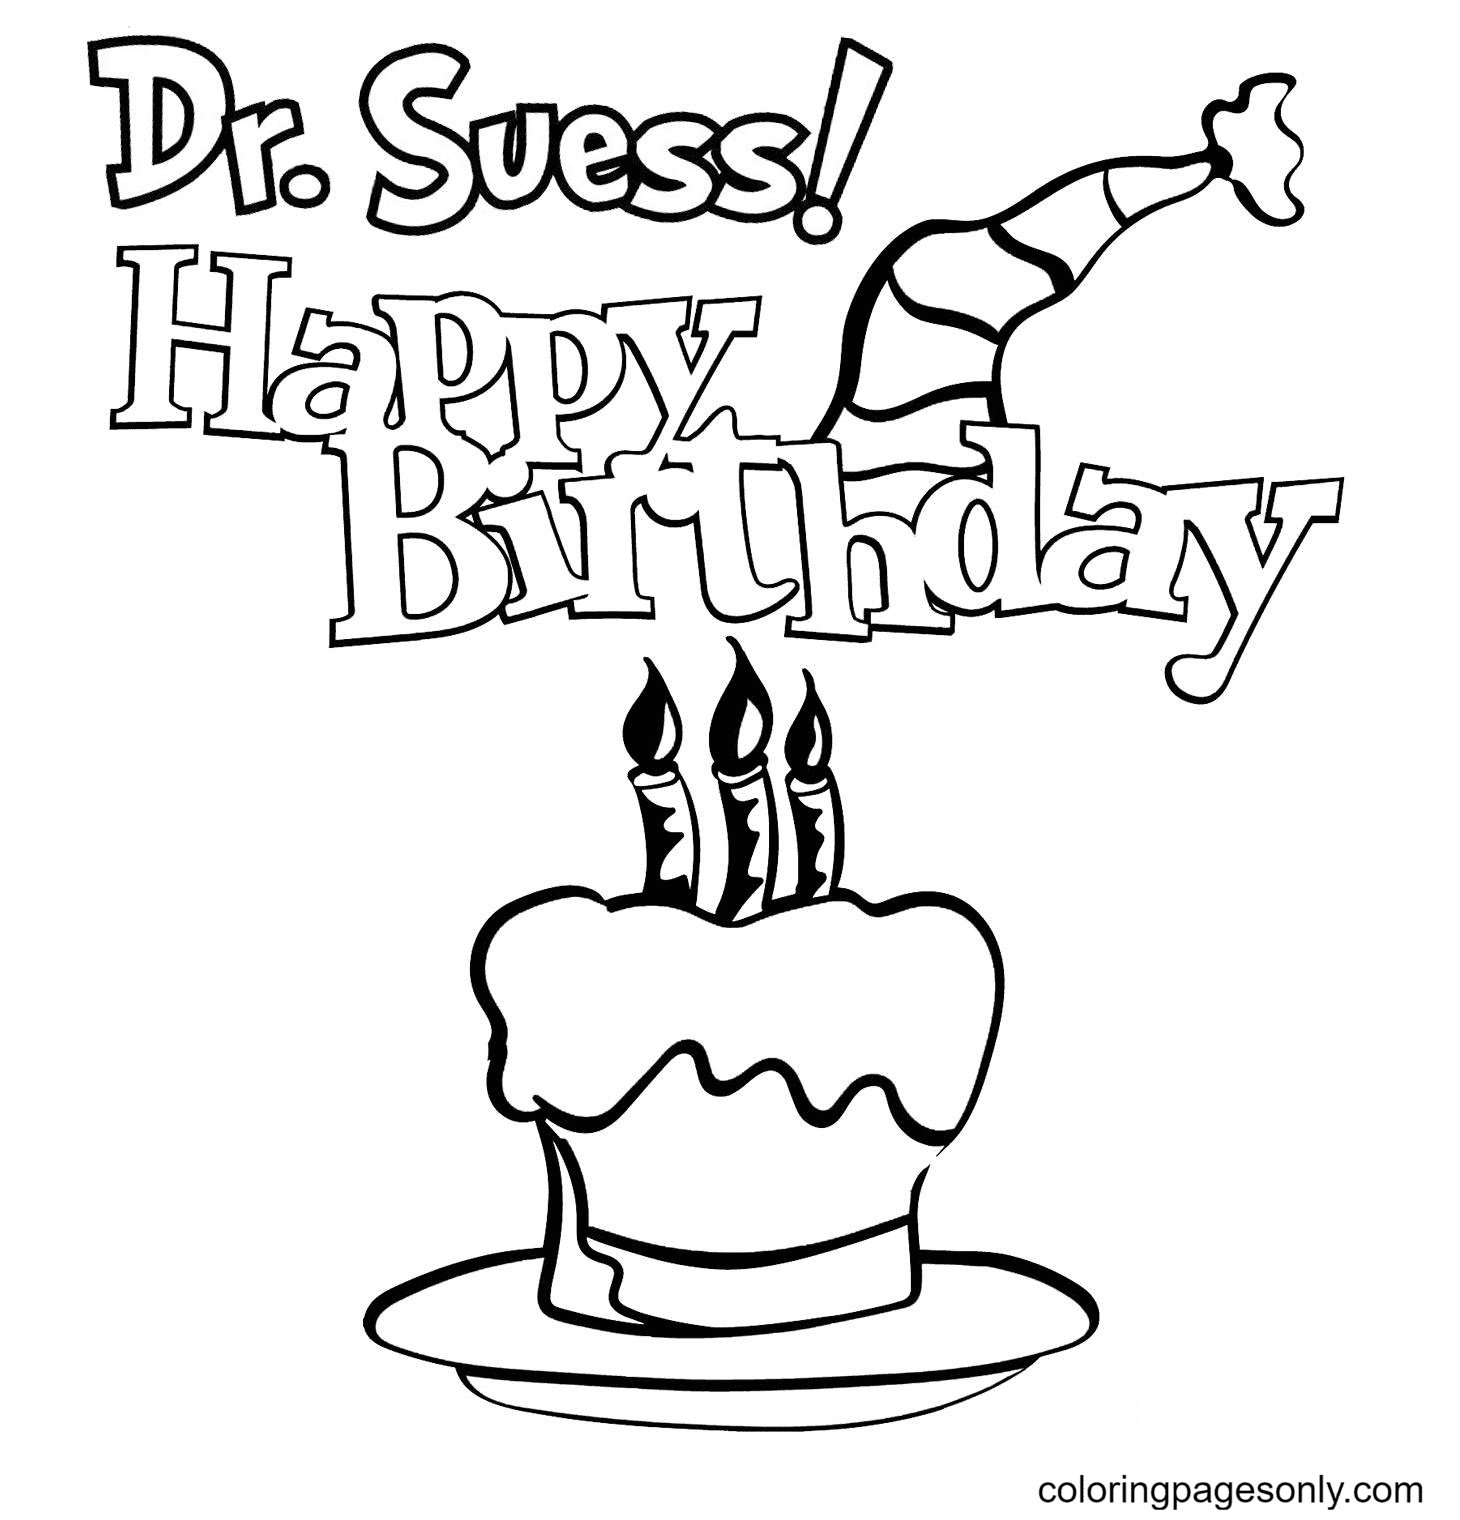 Happy Birthday Dr Seuss with Hat and Cake Coloring Page